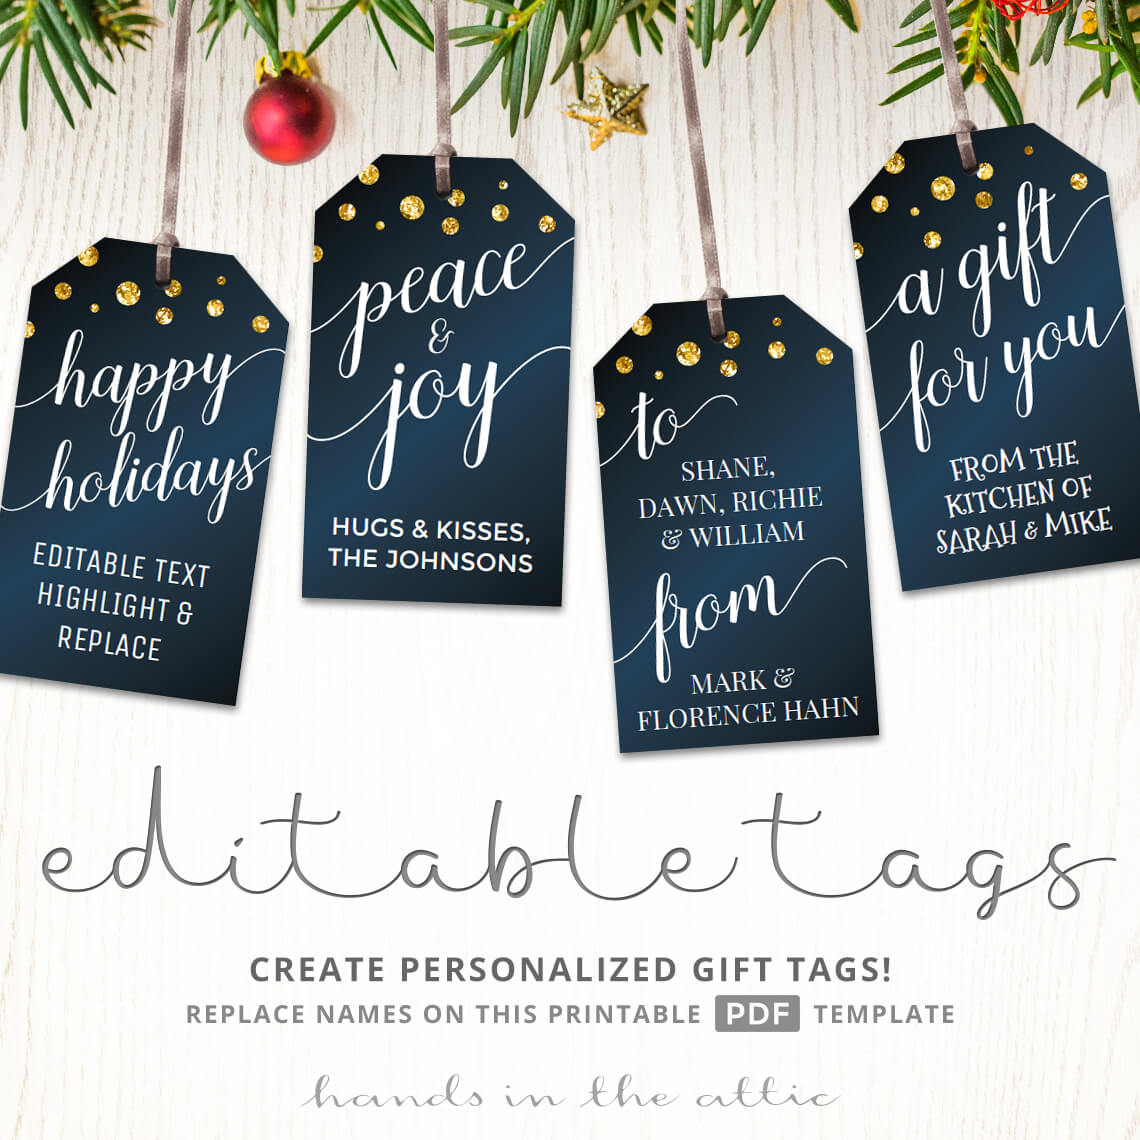 Printable Christmas Gift Tags | Navy Blue & Gold | Hands in the Attic